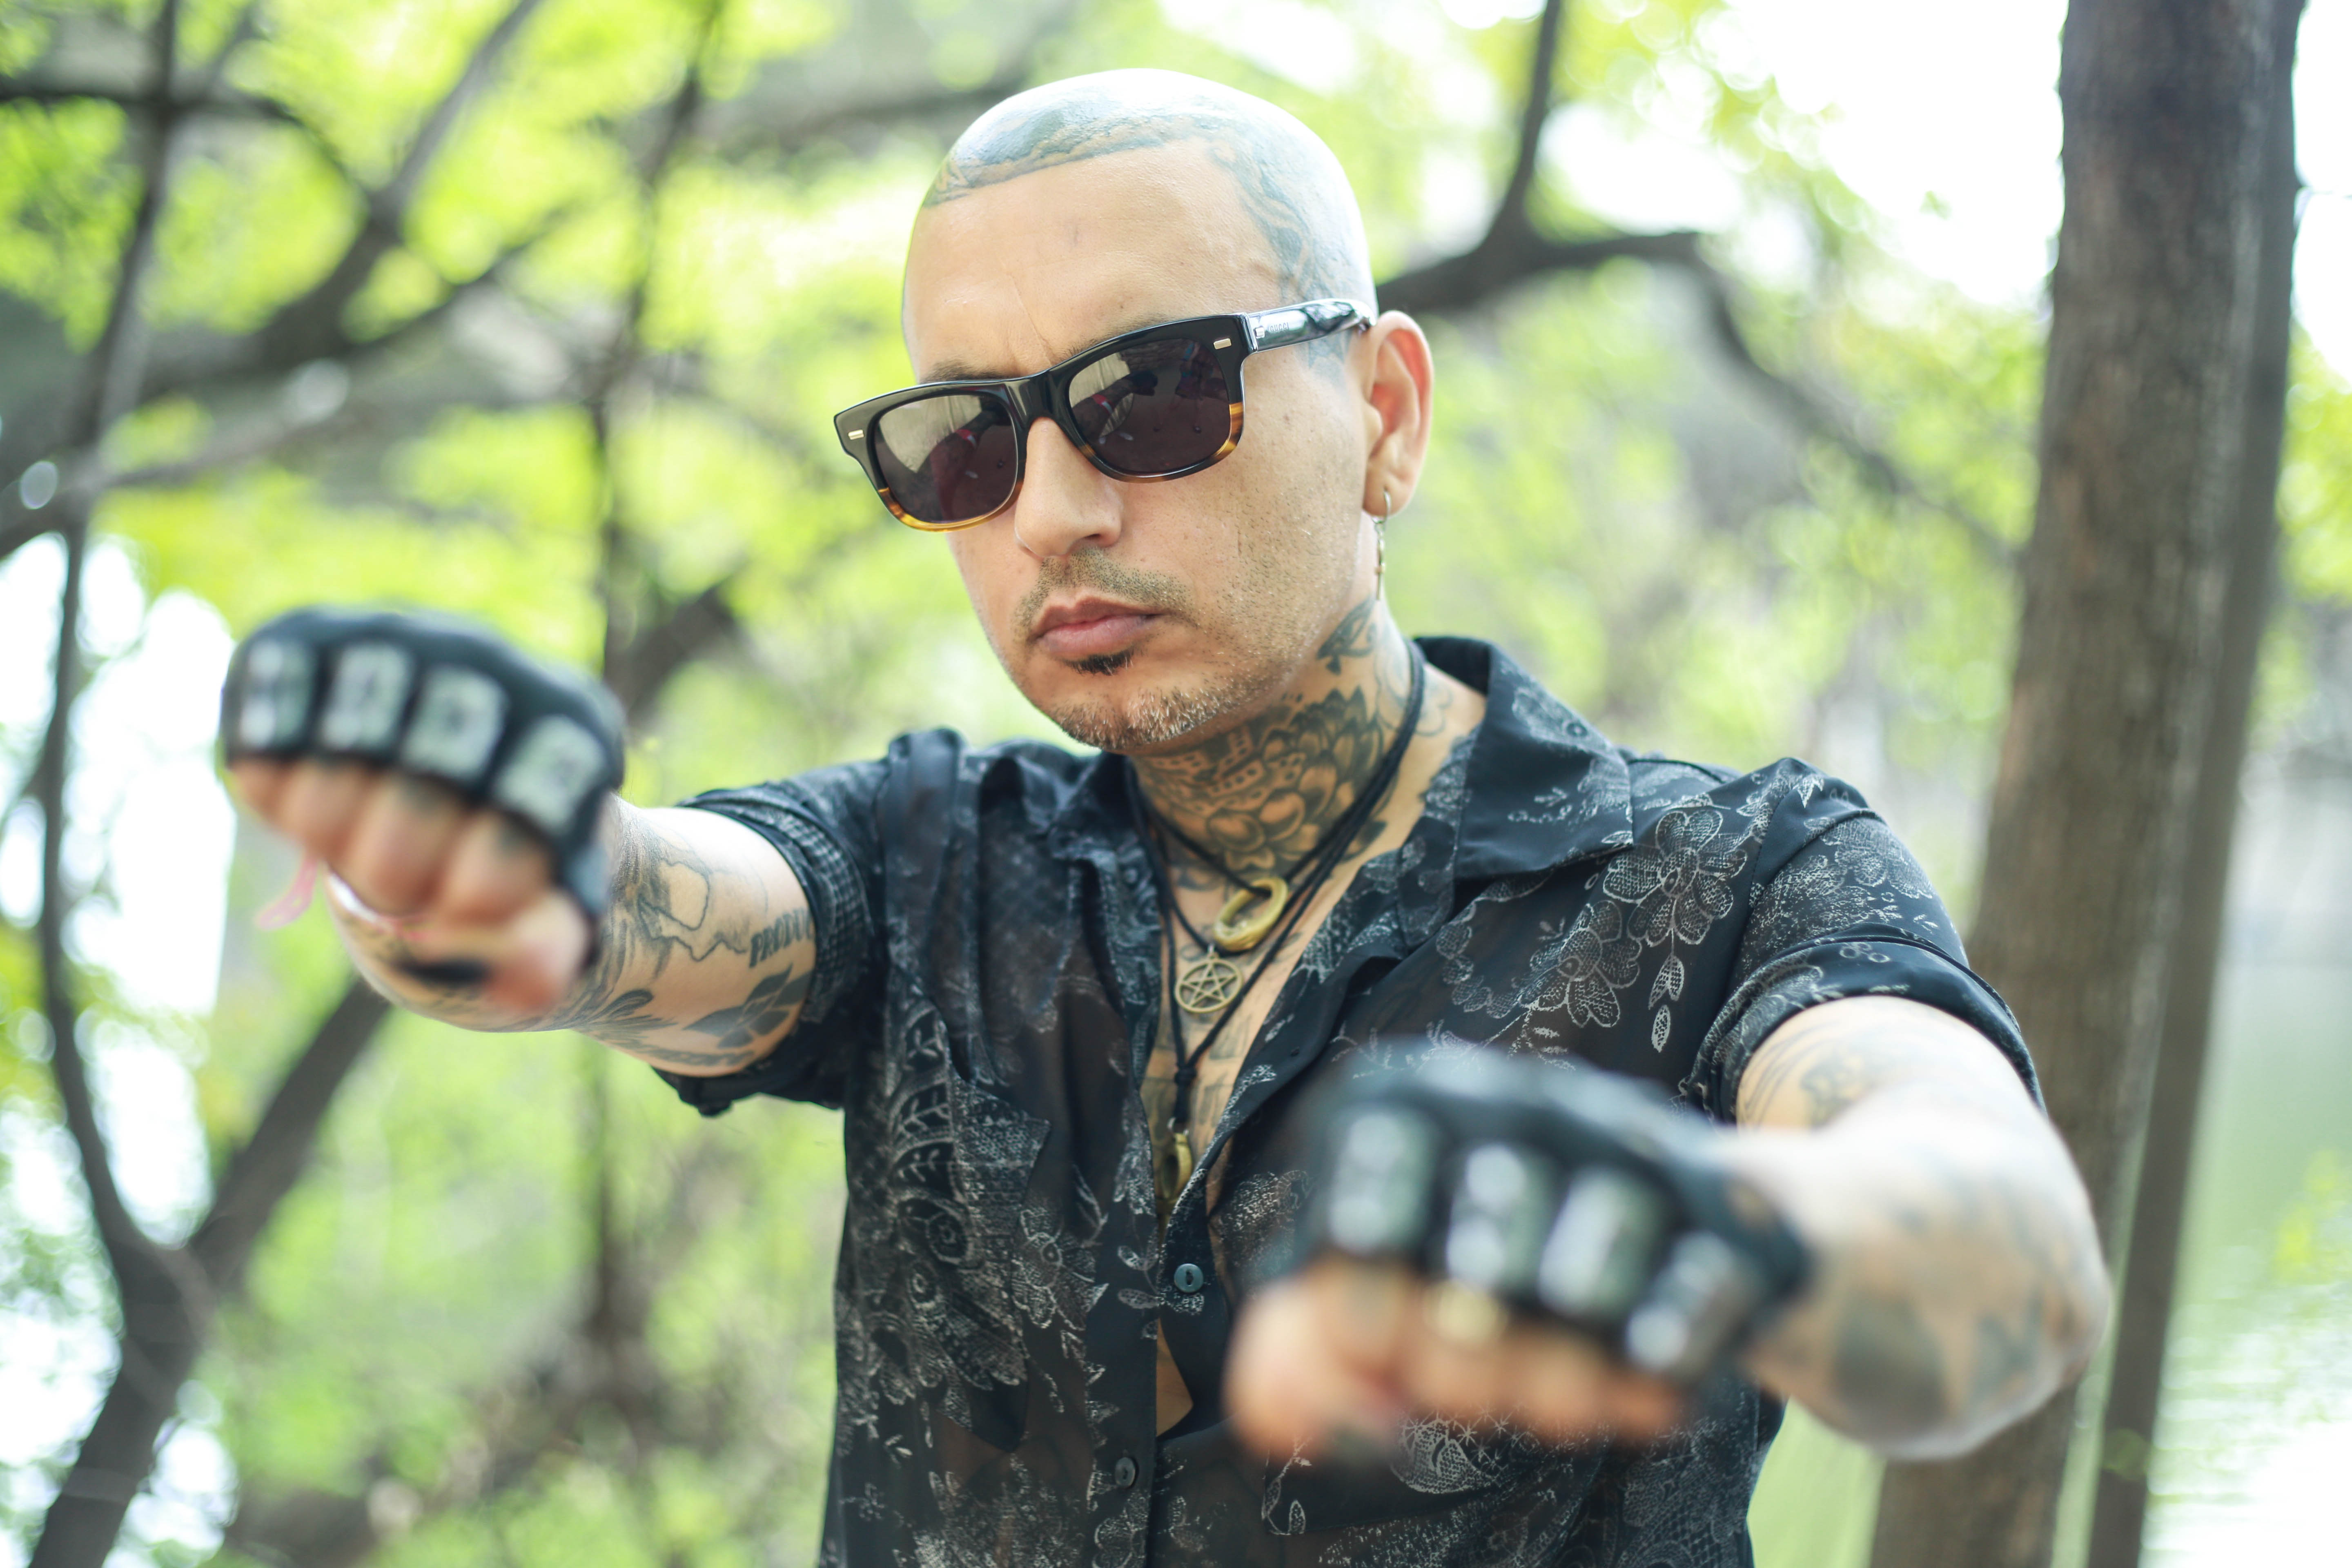 Kat Von D & Leafar Seyer Are a Match Made in Latino Goth Heaven